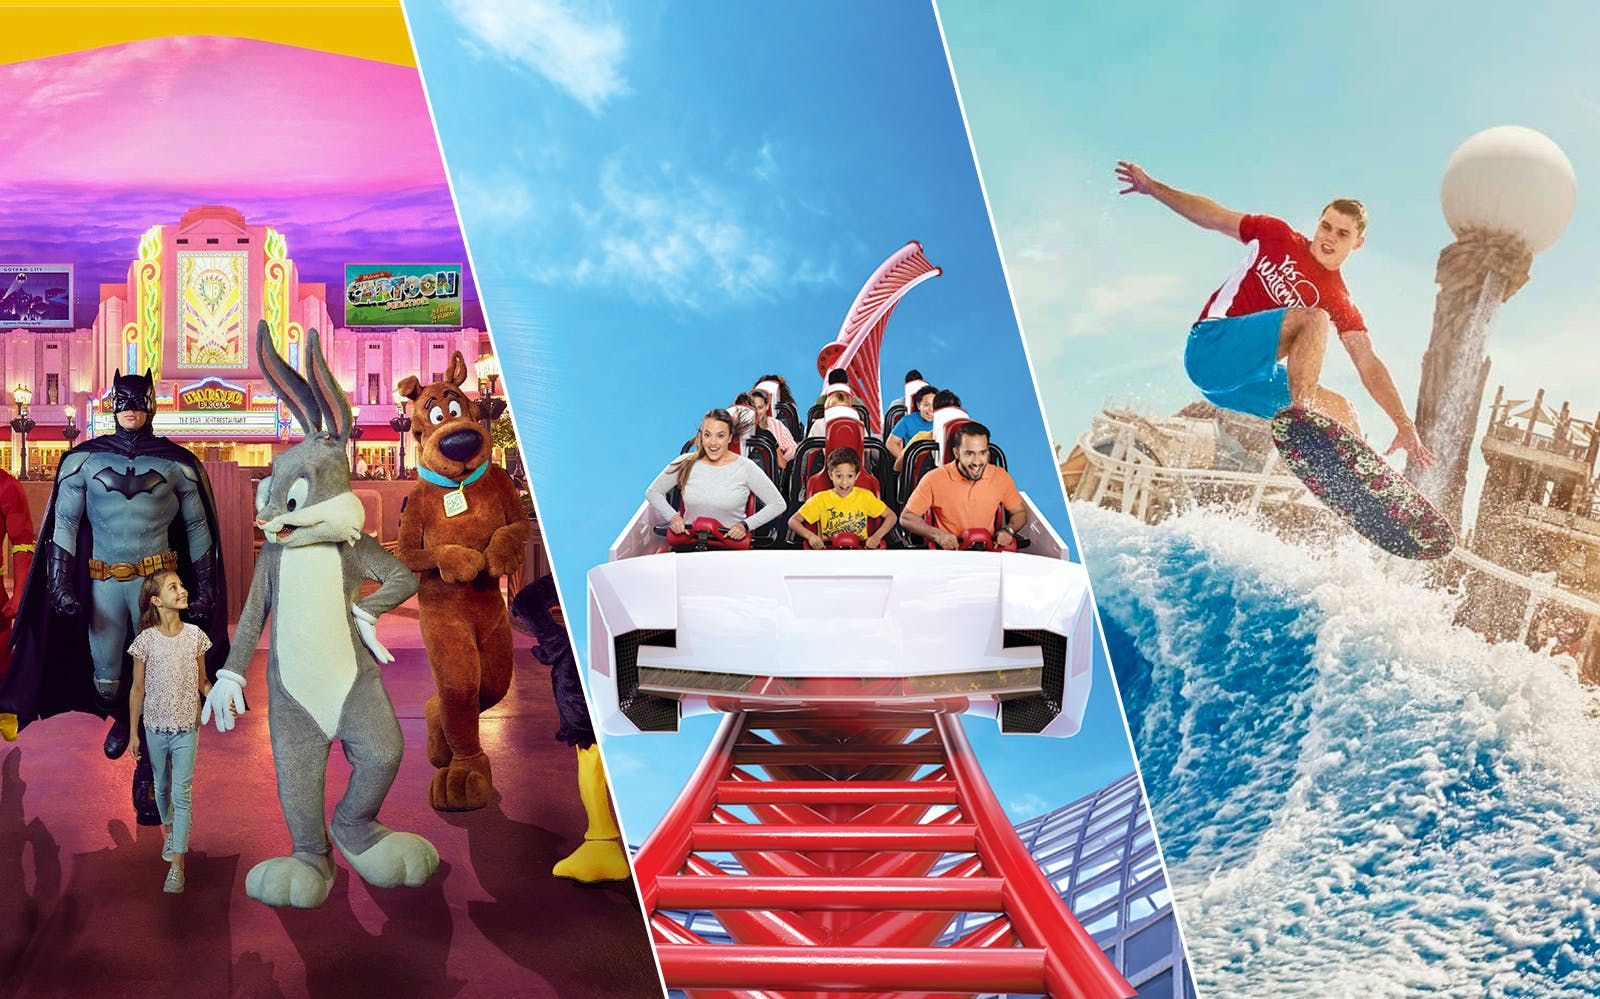 3 in 1 Ramadan Offer: Ferrari World, Warner Bros. World and Yas Waterworld